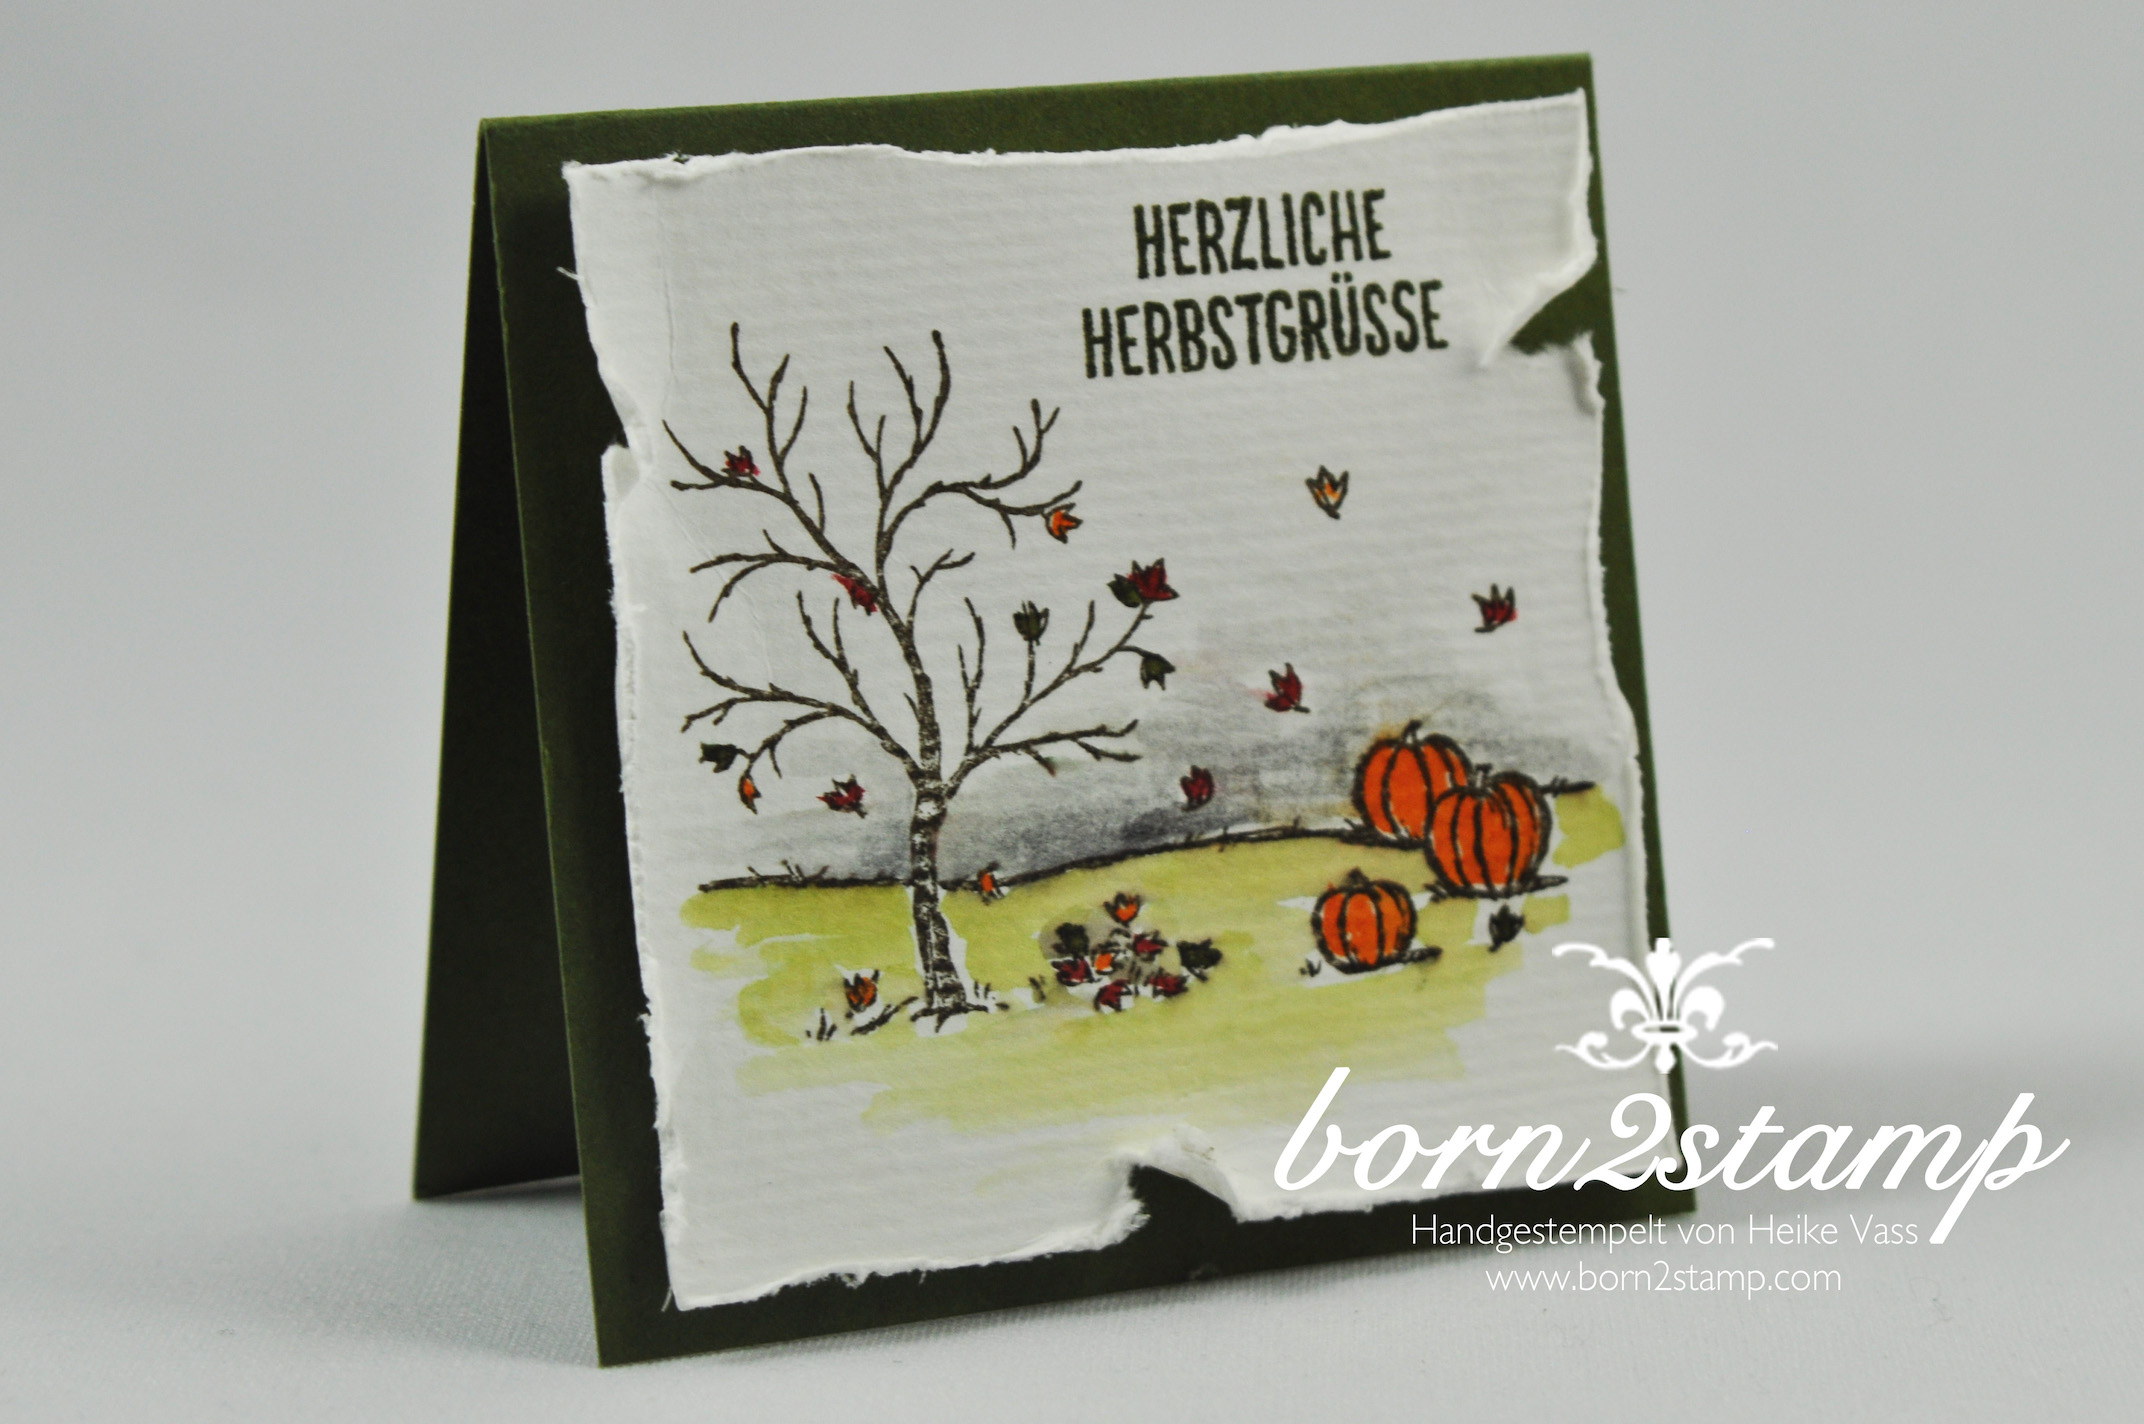 born2stamp STAMPIN' UP! Minikarten – Herbst – Winter – Bloghop – Frohliche Stunden – Aquapainter – Aquarellpapier